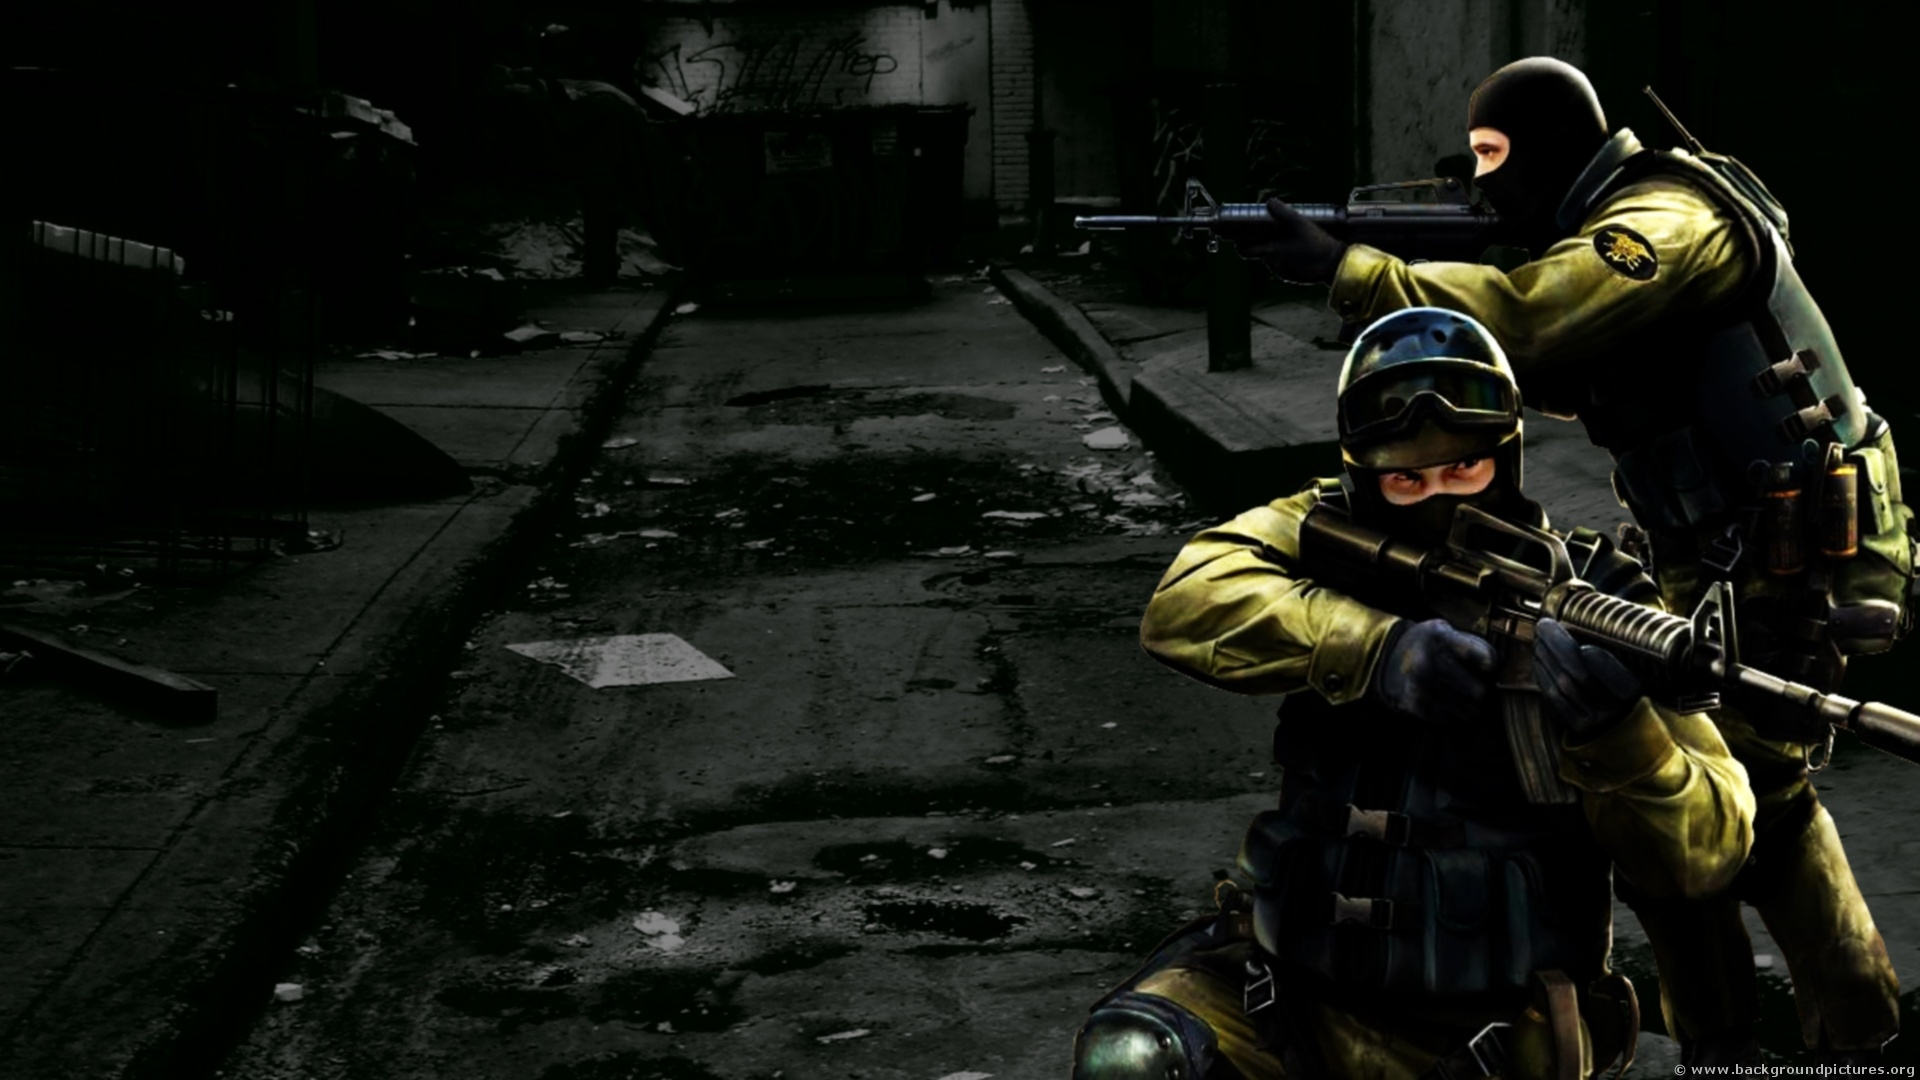 However, we are not going to further details of the game as I you are here for some other purpose. As we all know, Counter Strike is not available for Mac.